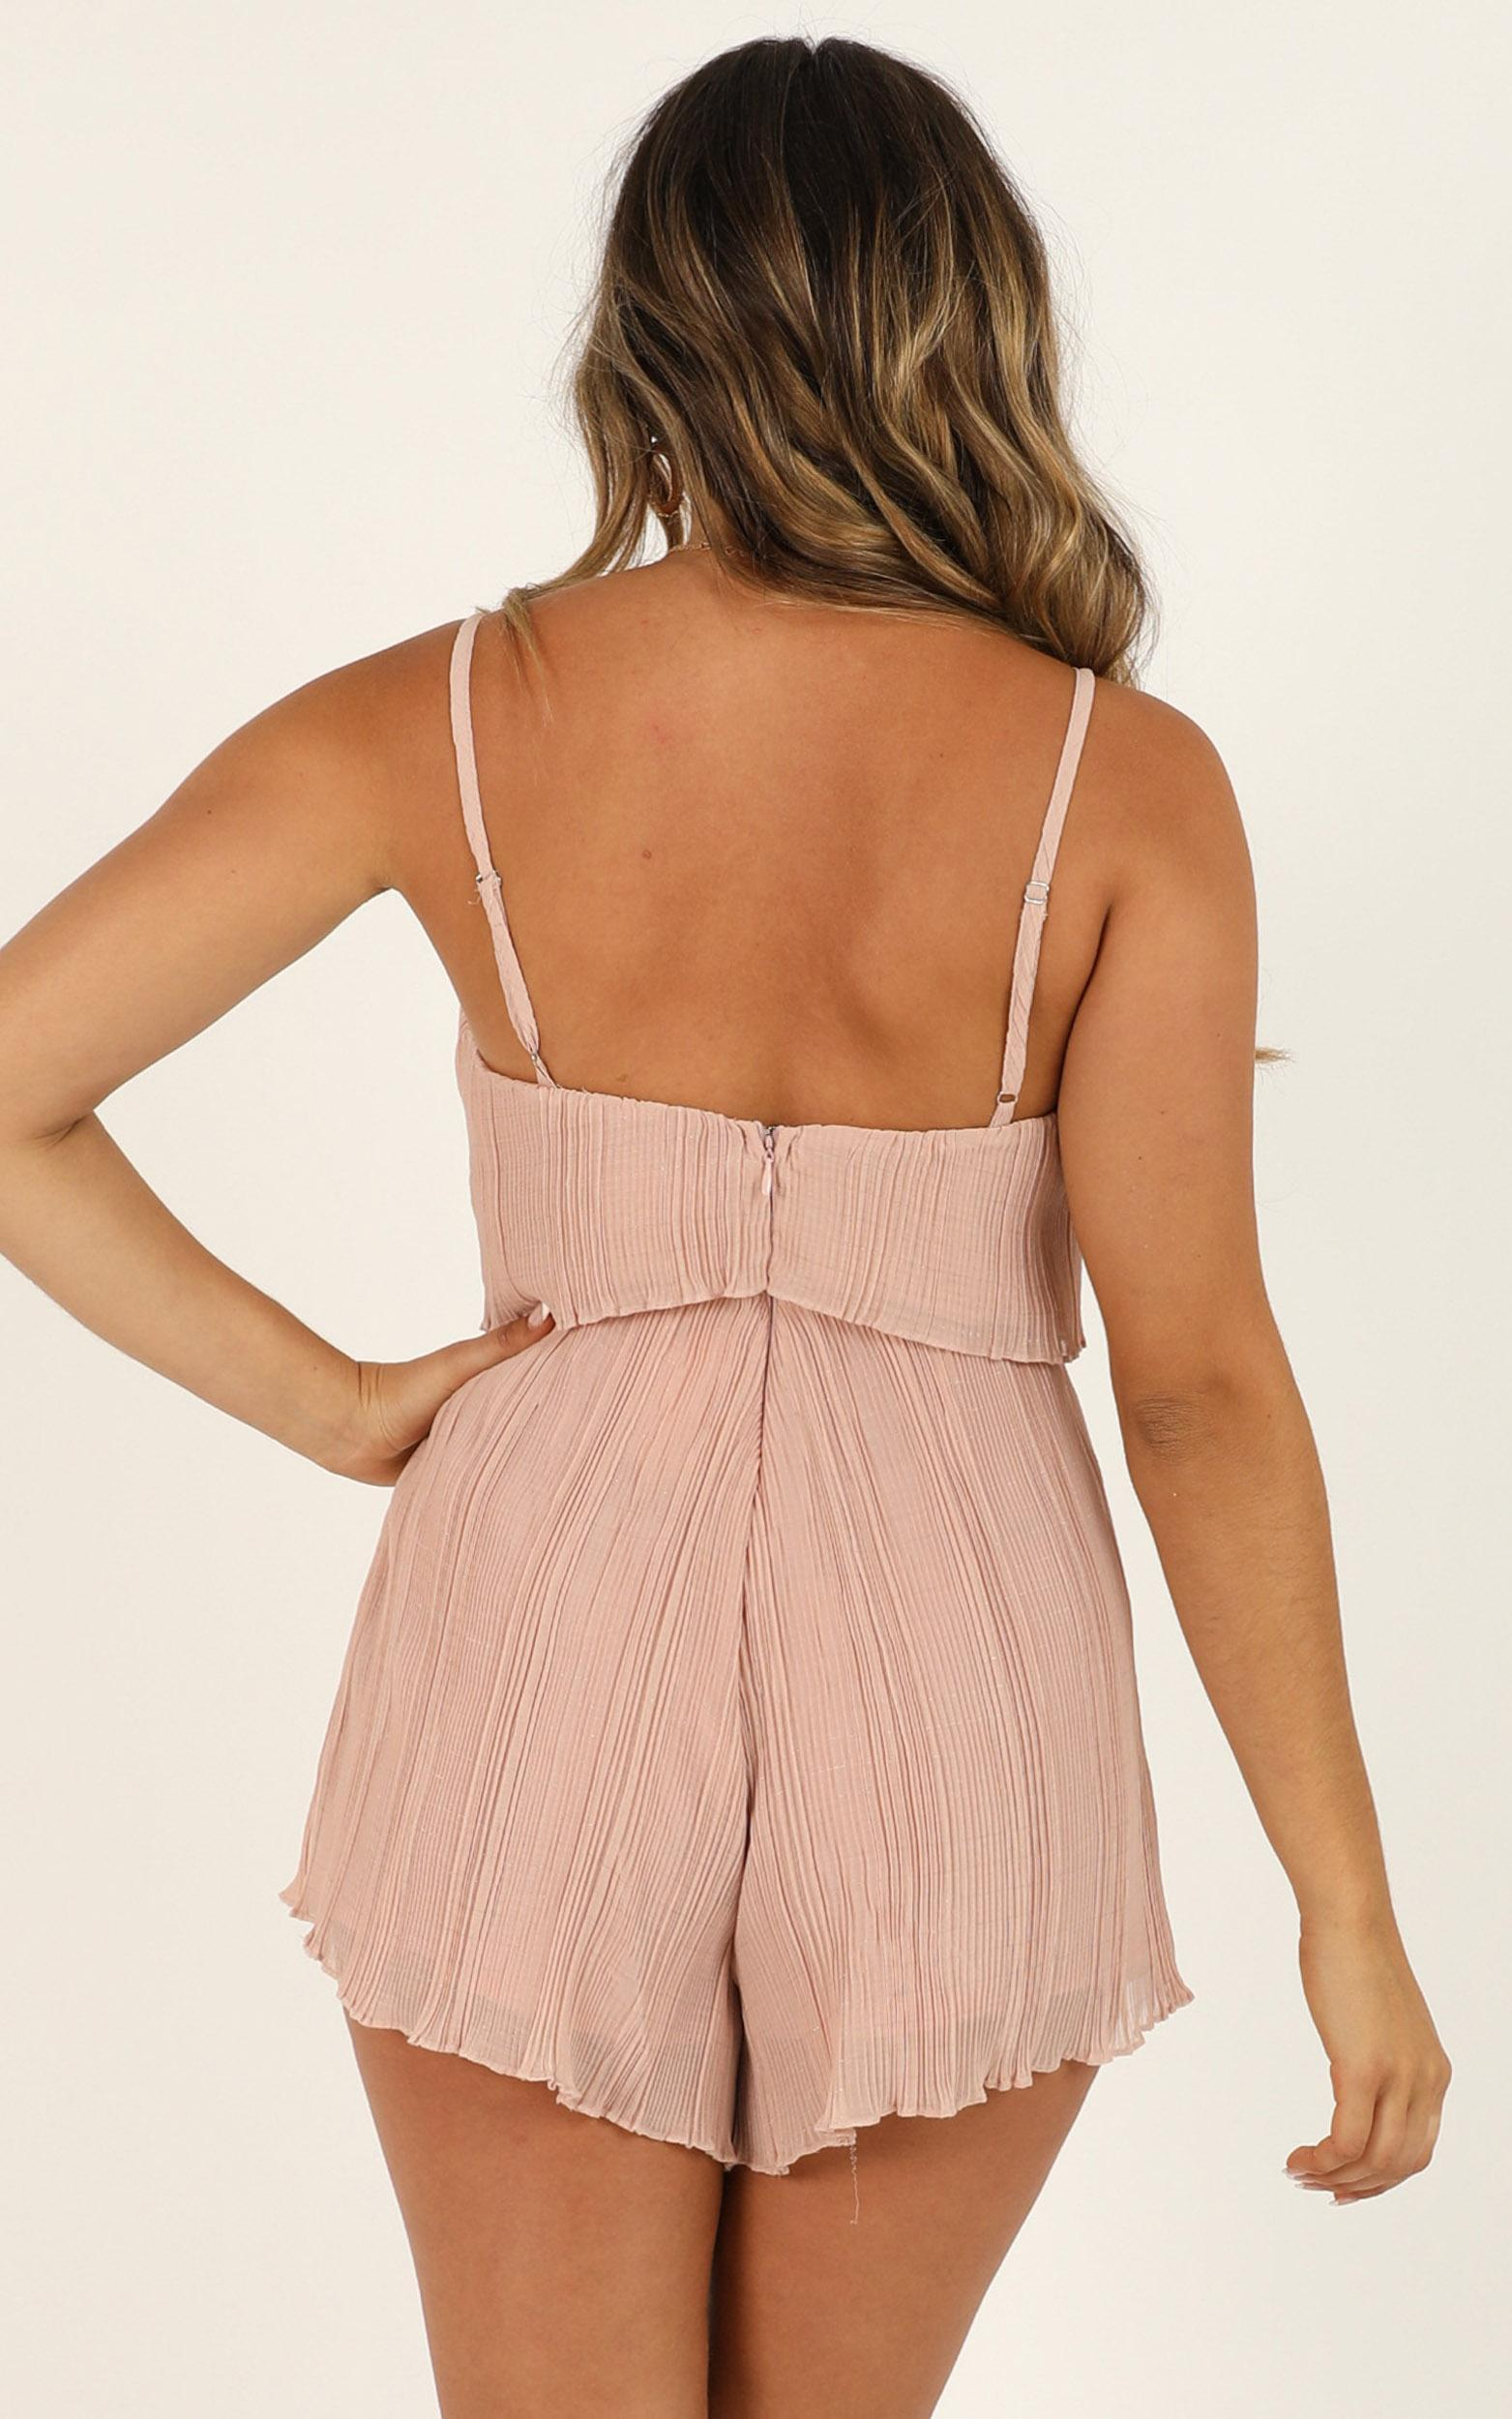 Got The Love For You Playsuit in blush pleat - 20 (XXXXL), Blush, hi-res image number null